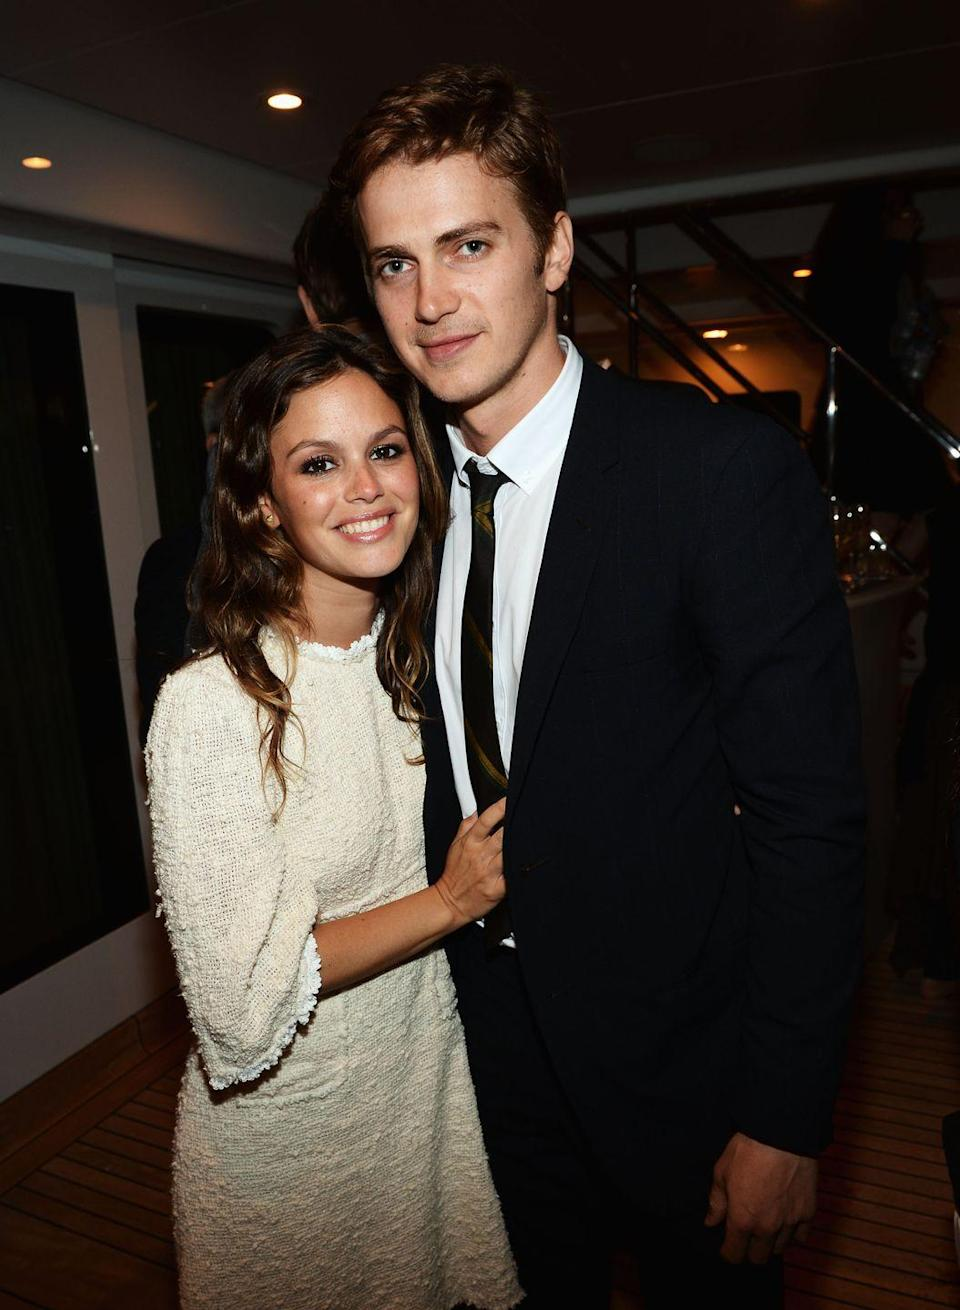 """<p>The O.C. star Rachel Bilson met Star Wars actor Hayden Christensen <a href=""""https://www.bustle.com/articles/30468-how-did-rachel-bilson-hayden-christensen-meet-it-was-love-at-first-time-travel"""" rel=""""nofollow noopener"""" target=""""_blank"""" data-ylk=""""slk:on the set of their 2007 flick Jumper"""" class=""""link rapid-noclick-resp"""">on the set of their 2007 flick Jumper</a>. After a year of dating, the couple got engaged. The couple continued to have <a href=""""https://www.womenshealthmag.com/relationships/g30404930/on-again-off-again-celebrity-relationships/?slide=10"""" rel=""""nofollow noopener"""" target=""""_blank"""" data-ylk=""""slk:an on-again, off-again relationship"""" class=""""link rapid-noclick-resp"""">an on-again, off-again relationship</a> until formally ending it in 2017.</p>"""